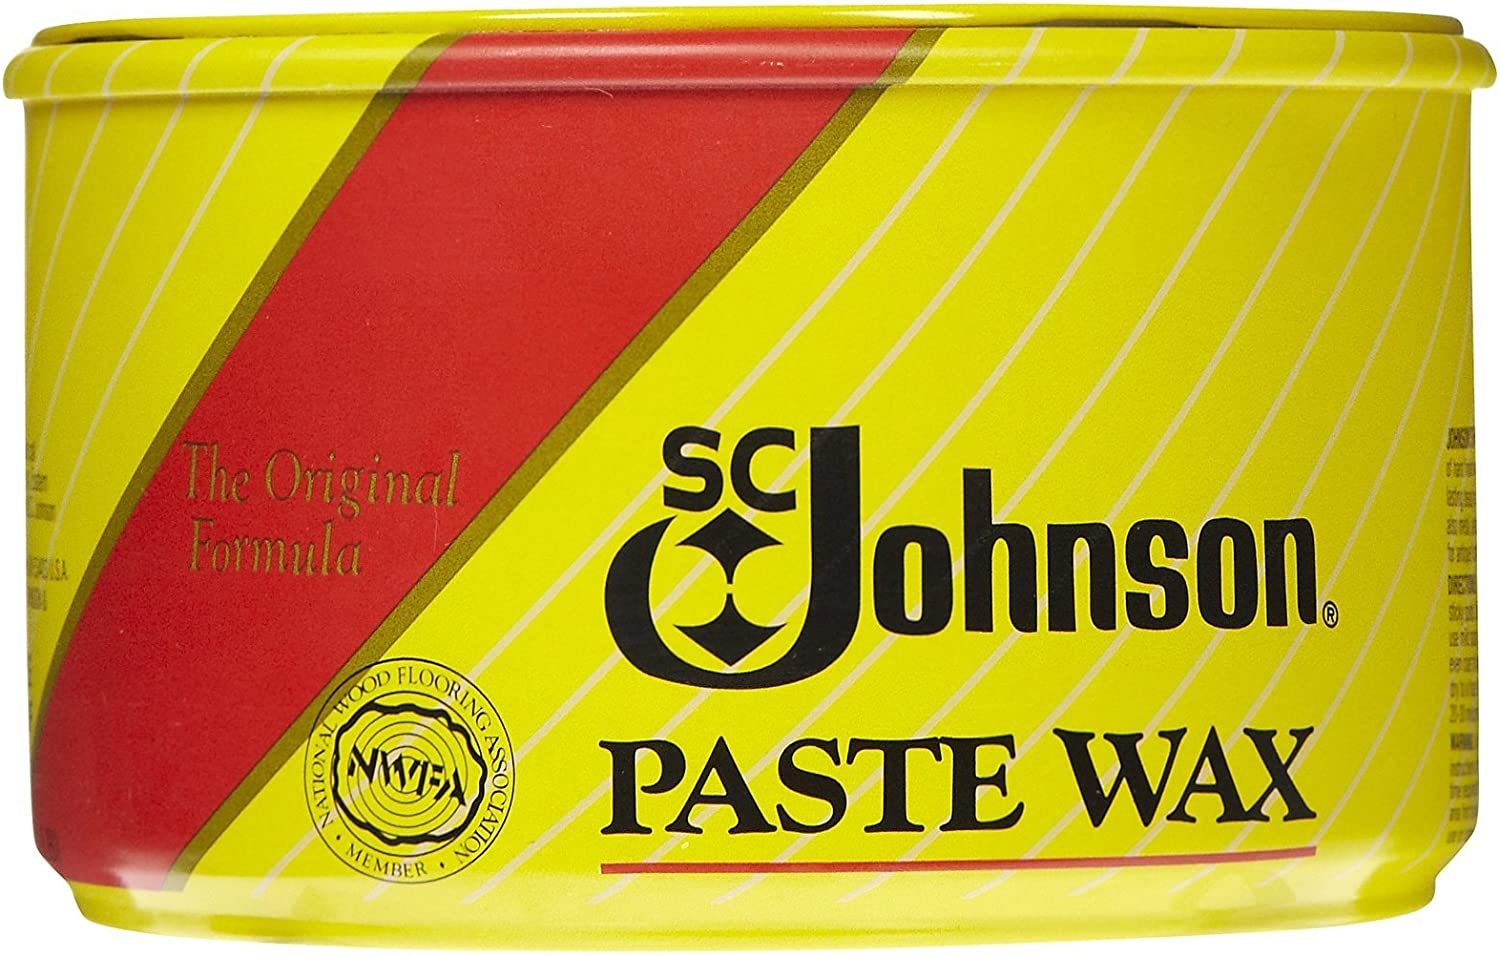 SC Johnson Paste Wax